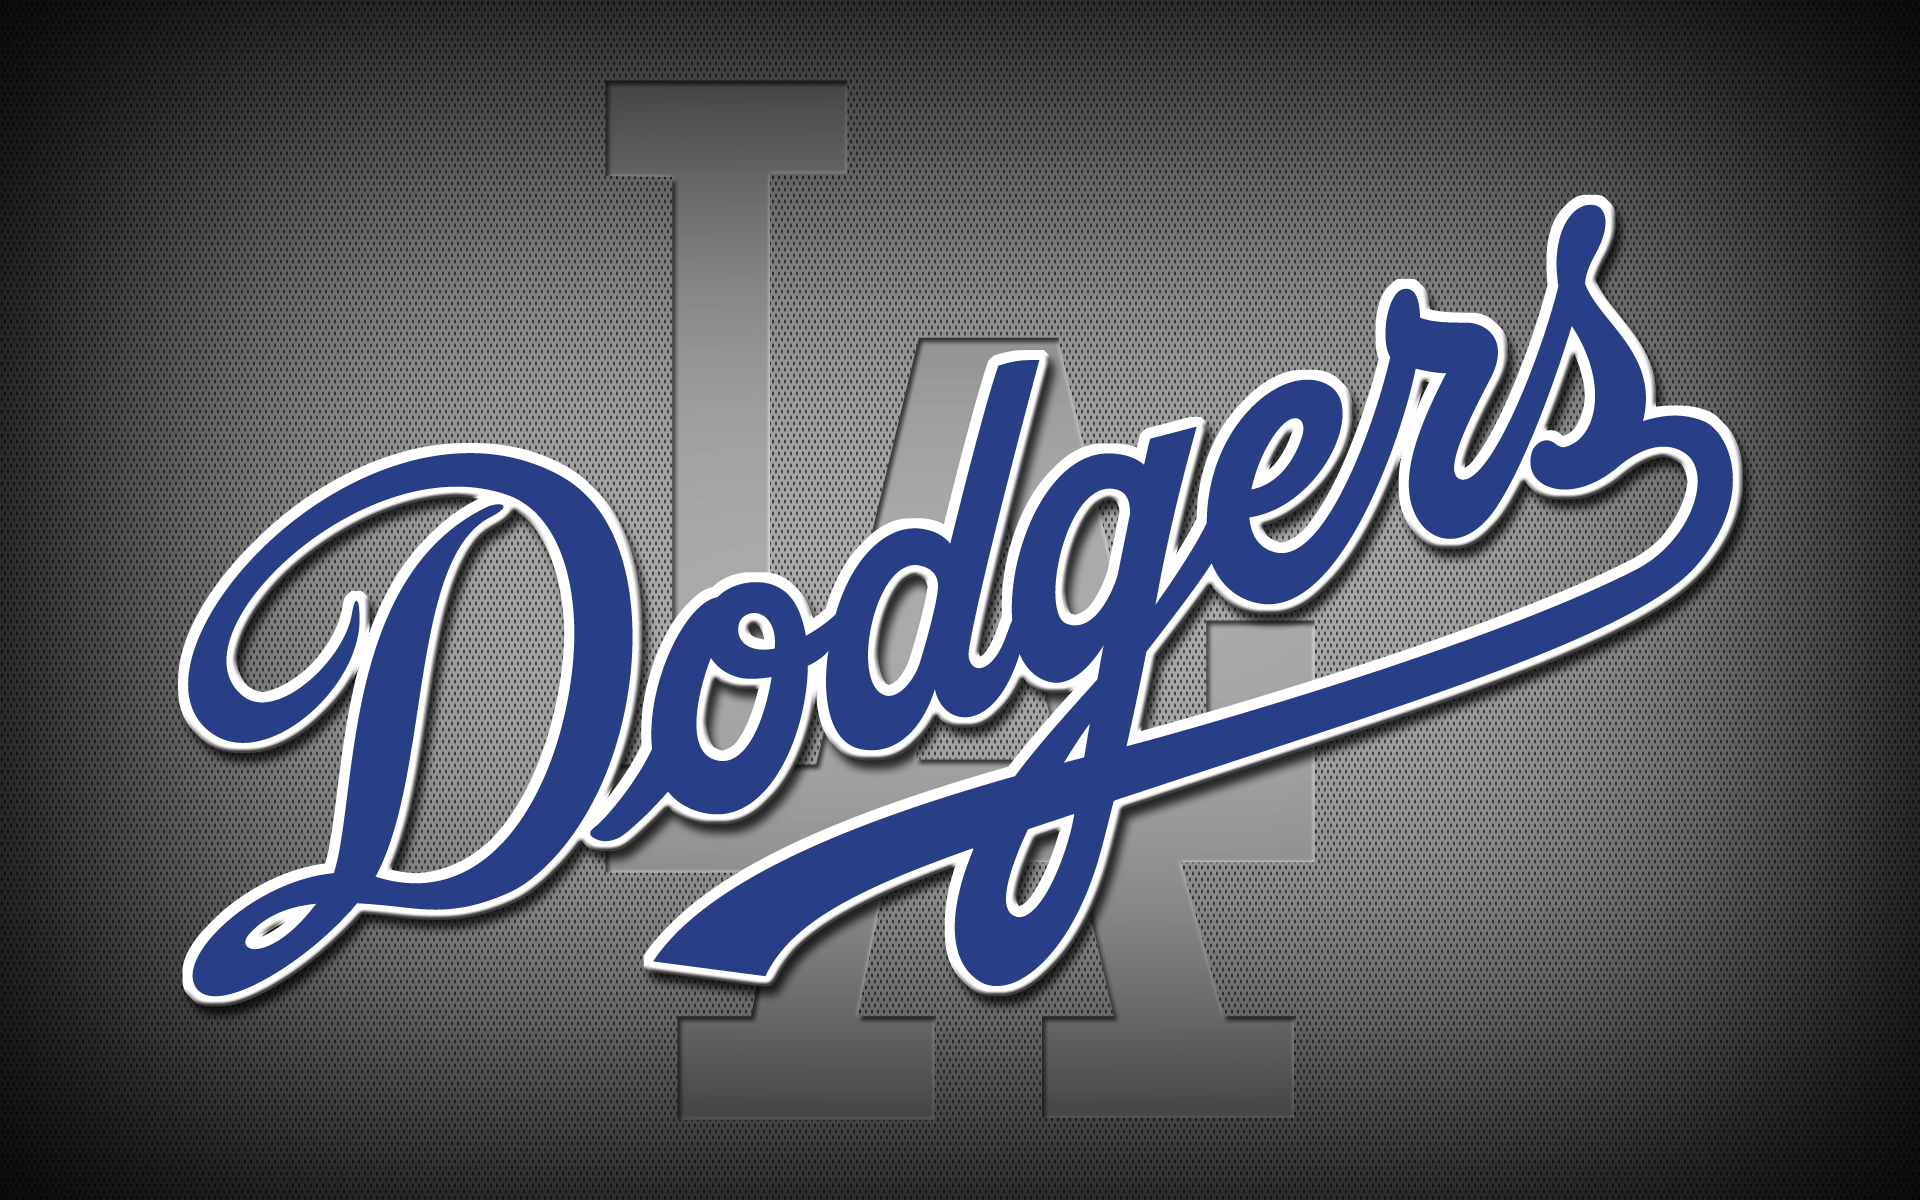 Free Top Dodger Images, Alan Geib